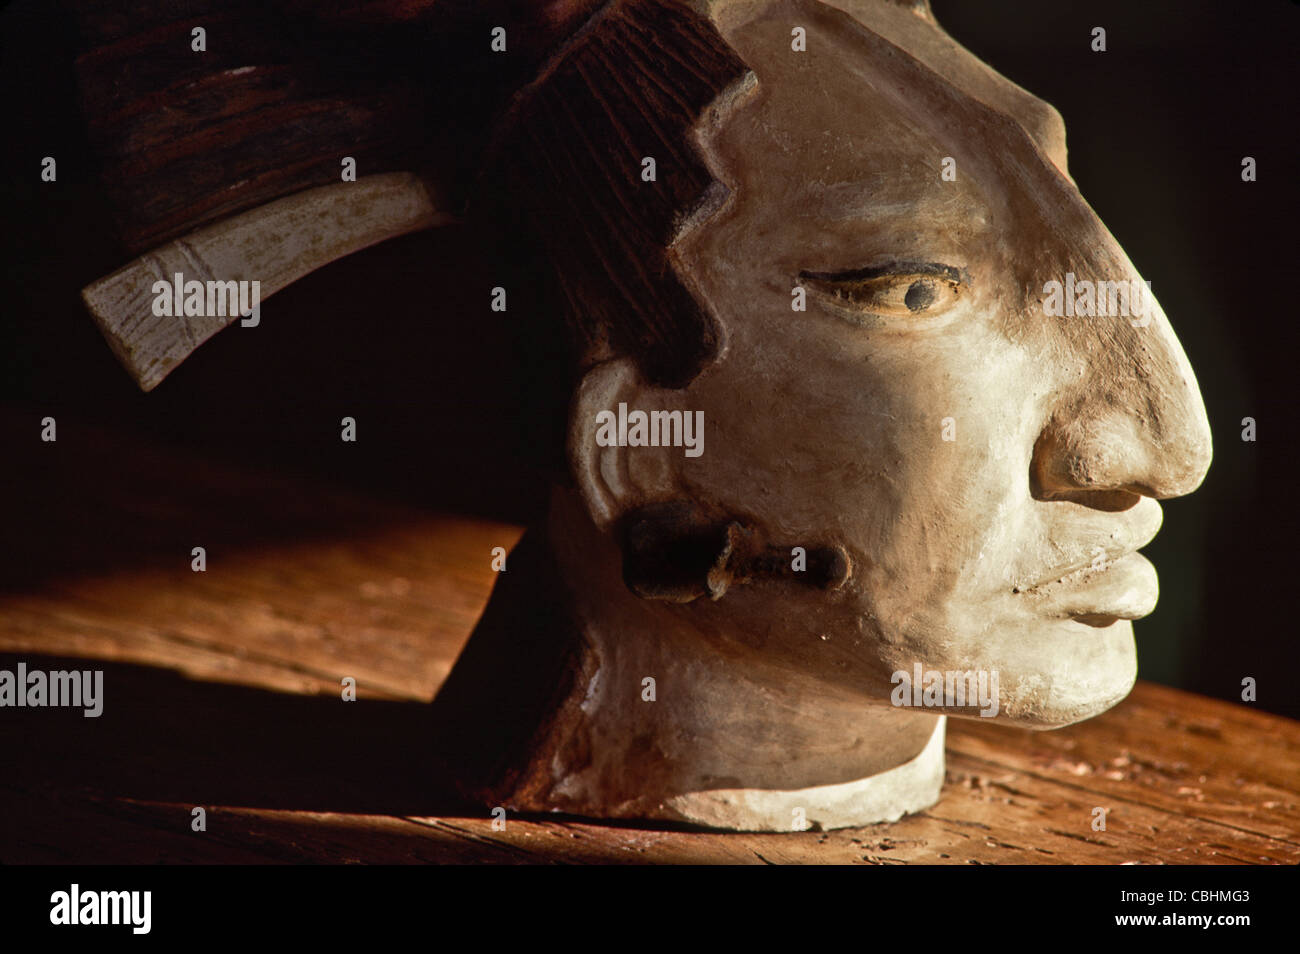 Folk art clay head of Pakal the Great, the Mayan leader of Palenque - Stock Image